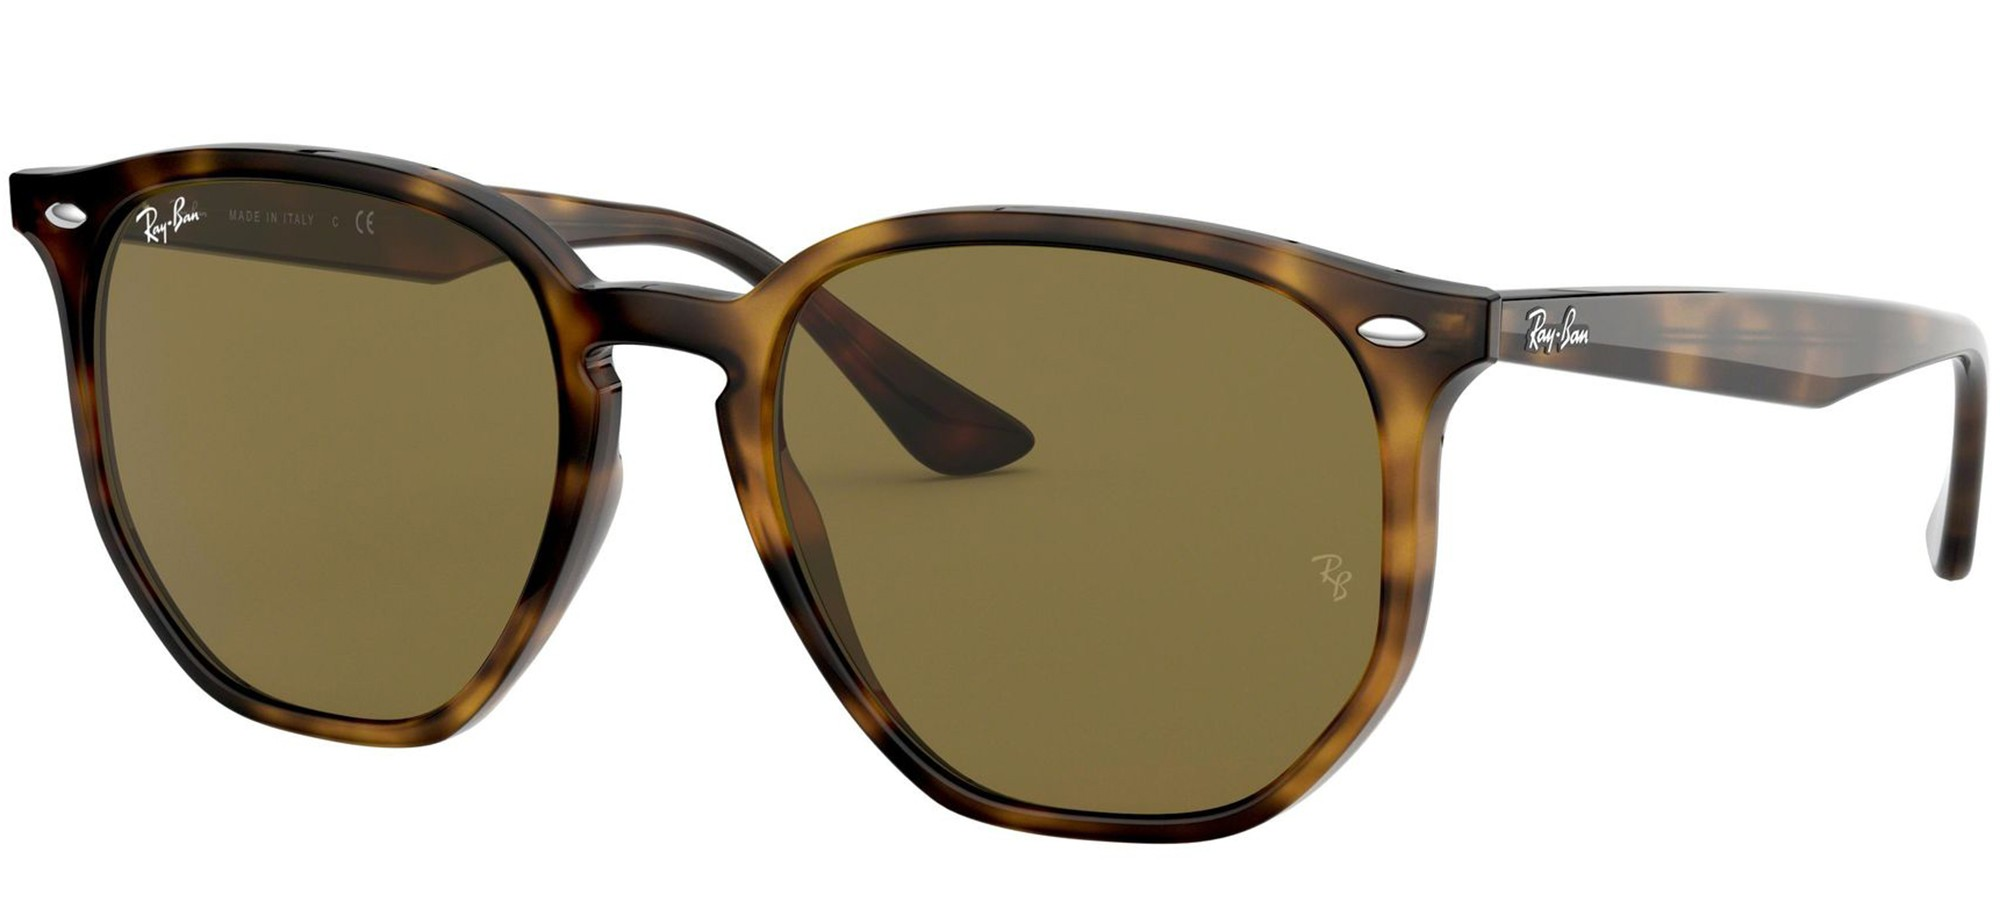 Ray-Ban solbriller RB 4306